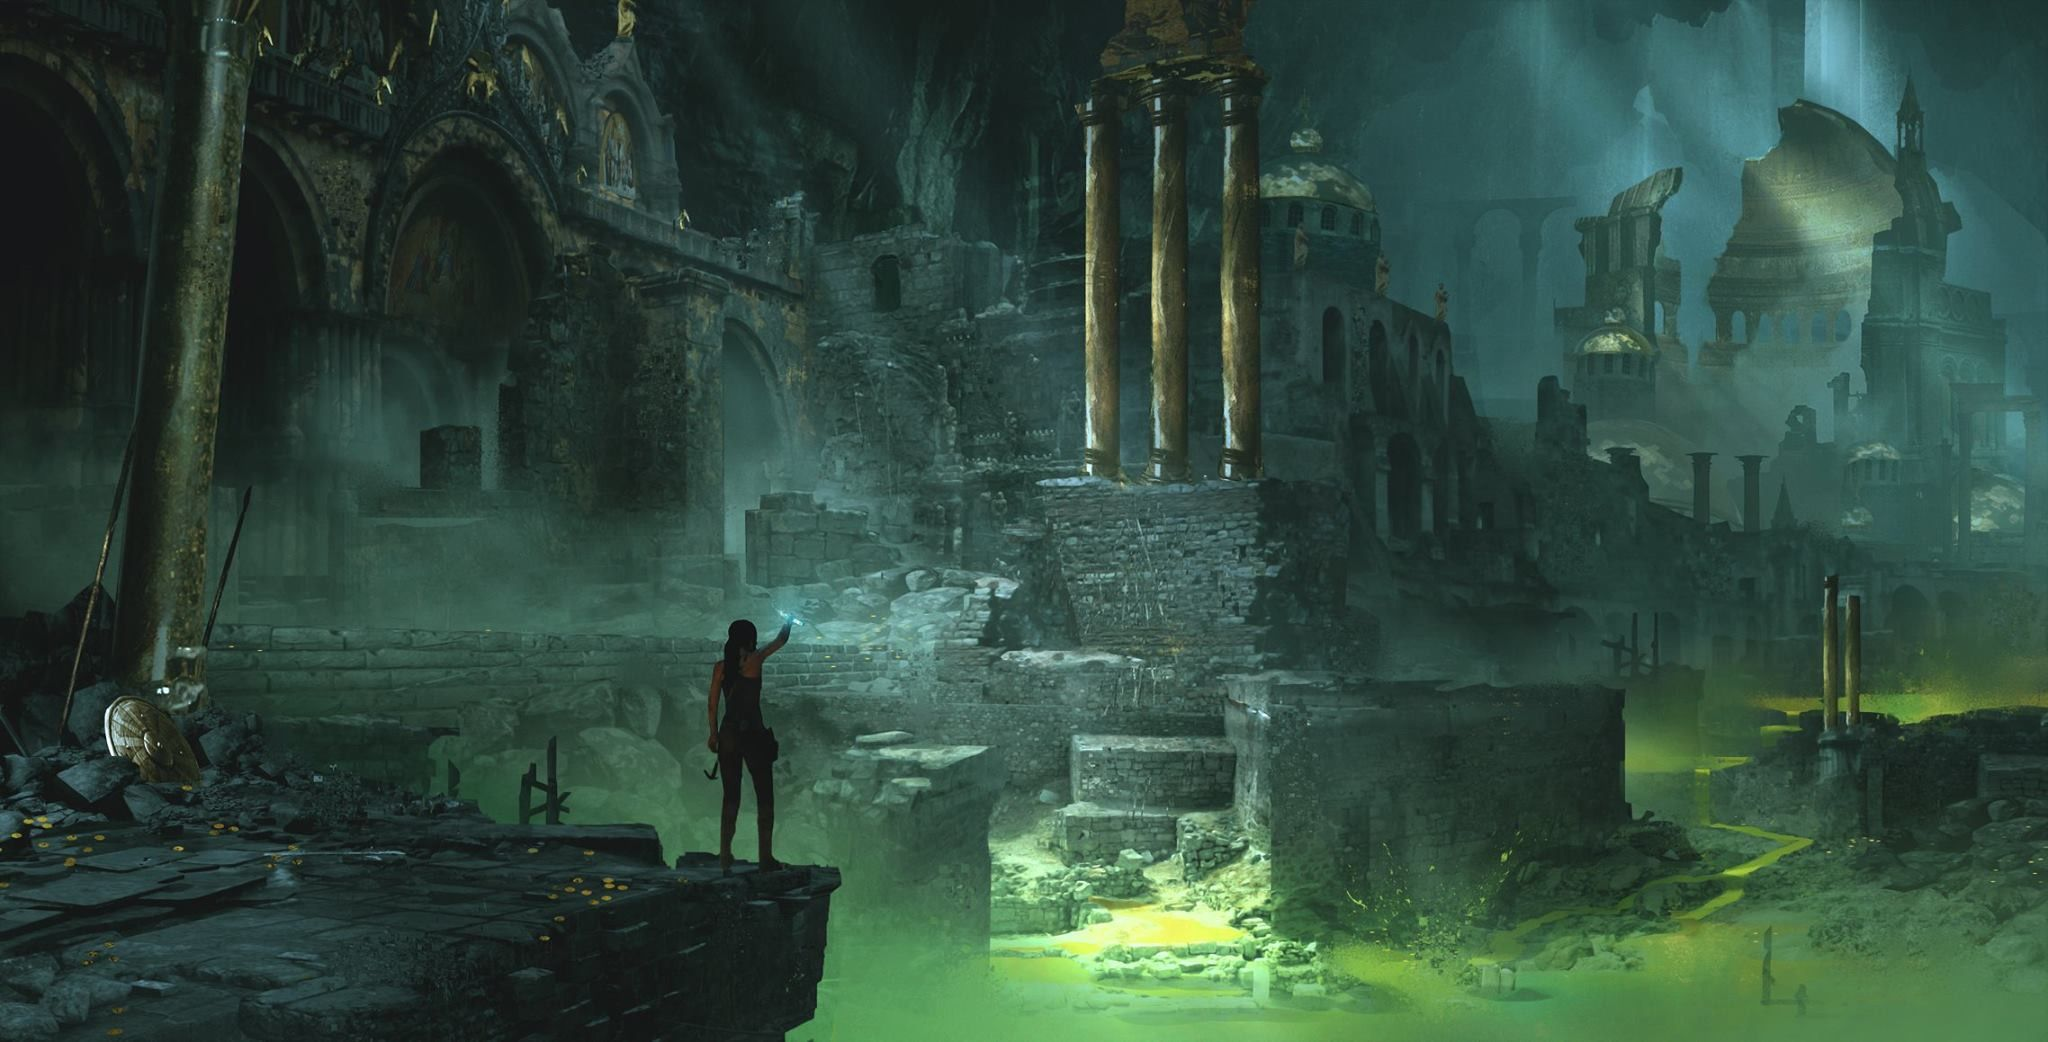 Pin By Edu On Tomb Raider Underwater City Lost City Of Atlantis Invisible Cities